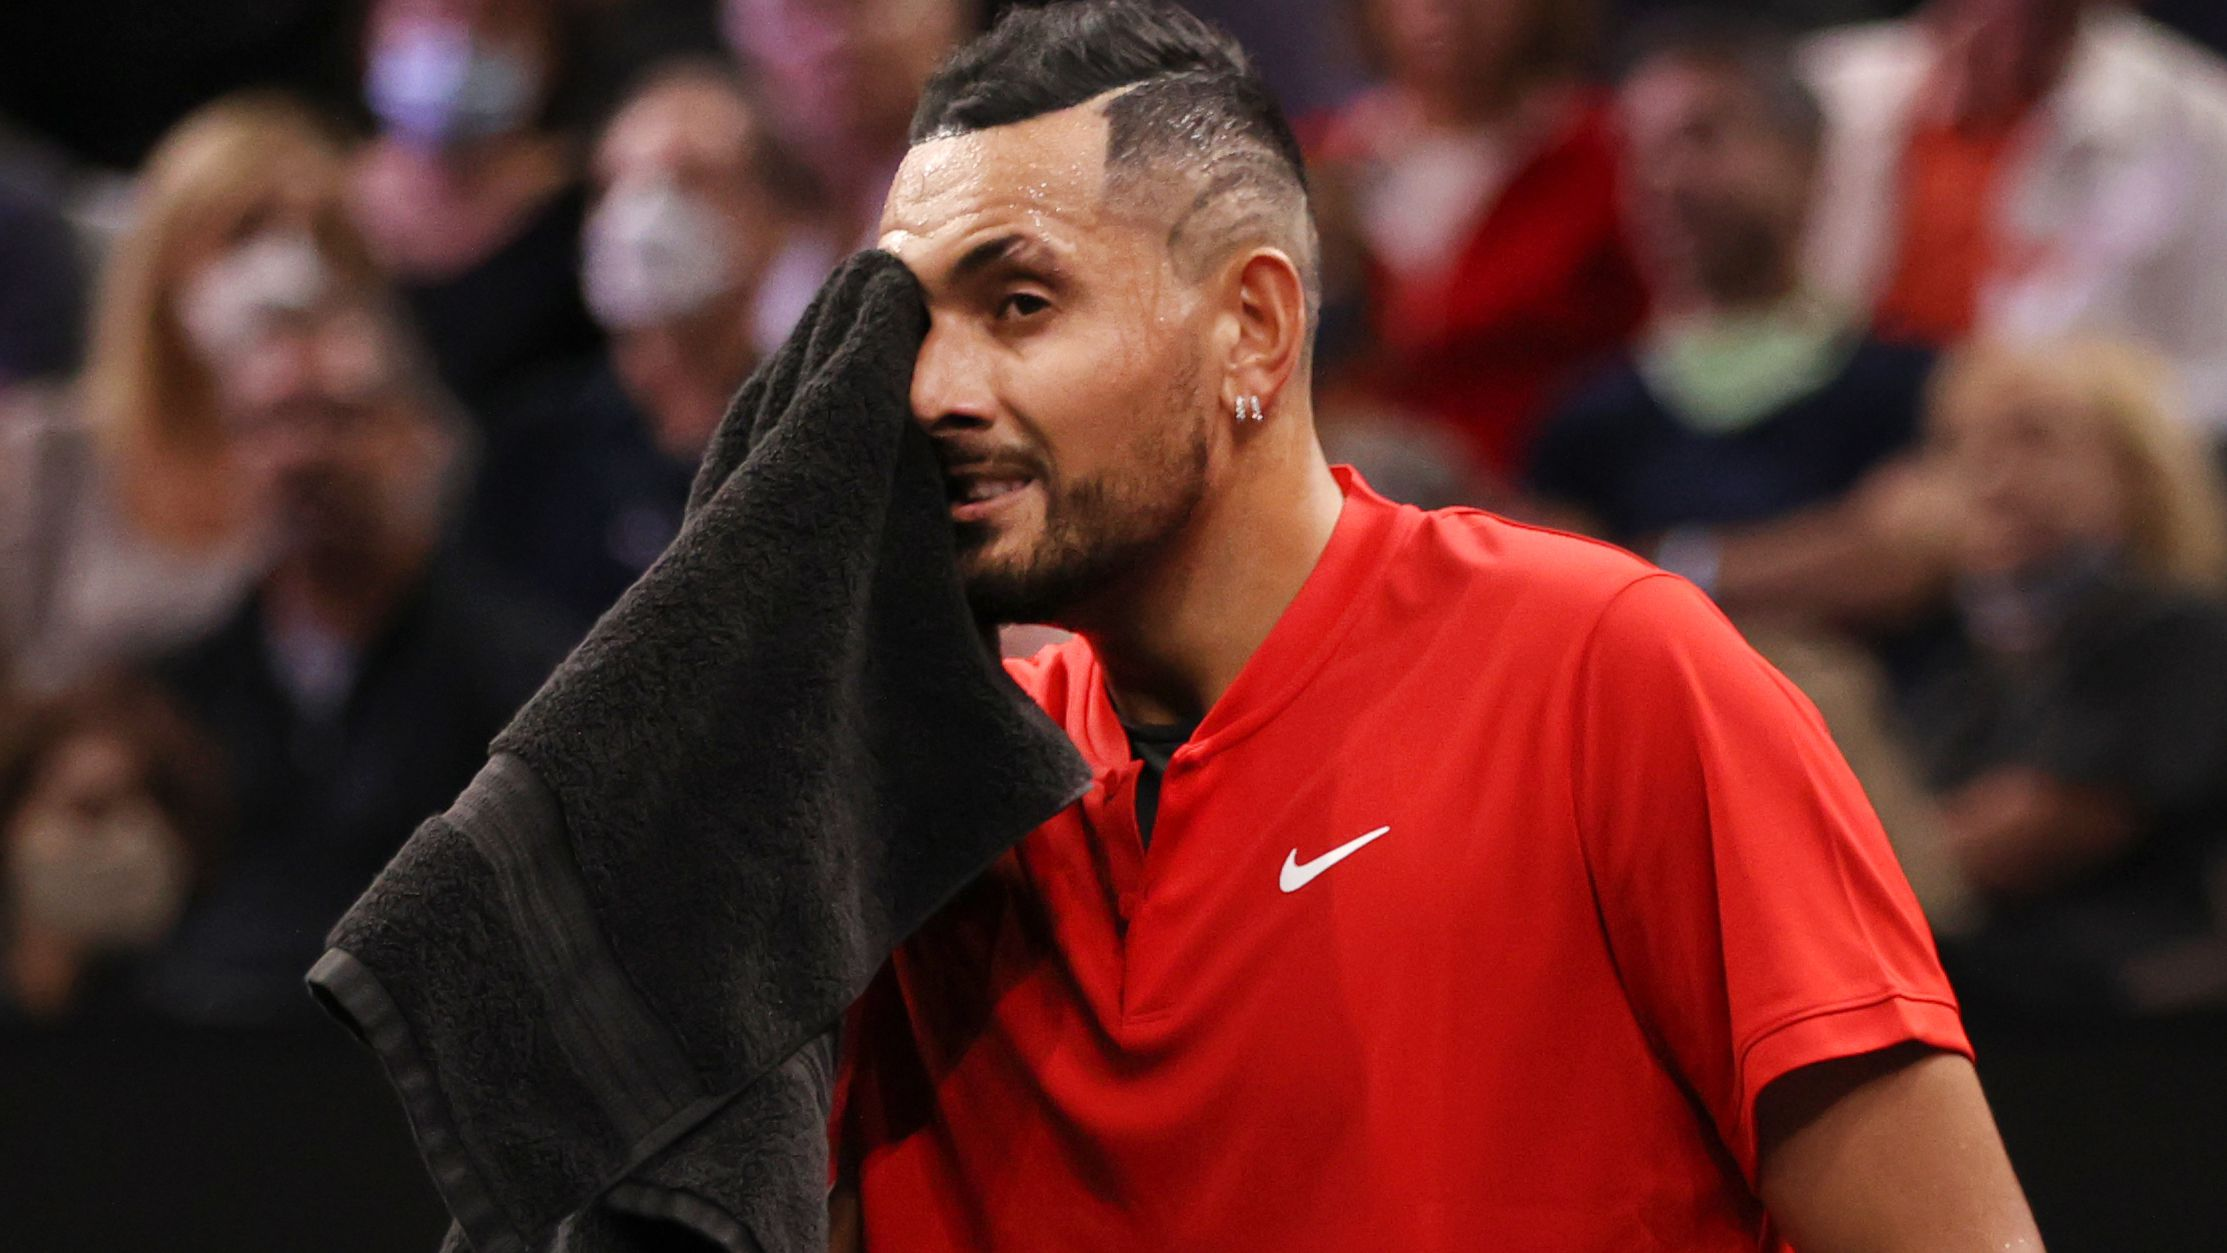 Nick Kyrgios reveals injury battle, vows to regain fitness before Australian Open